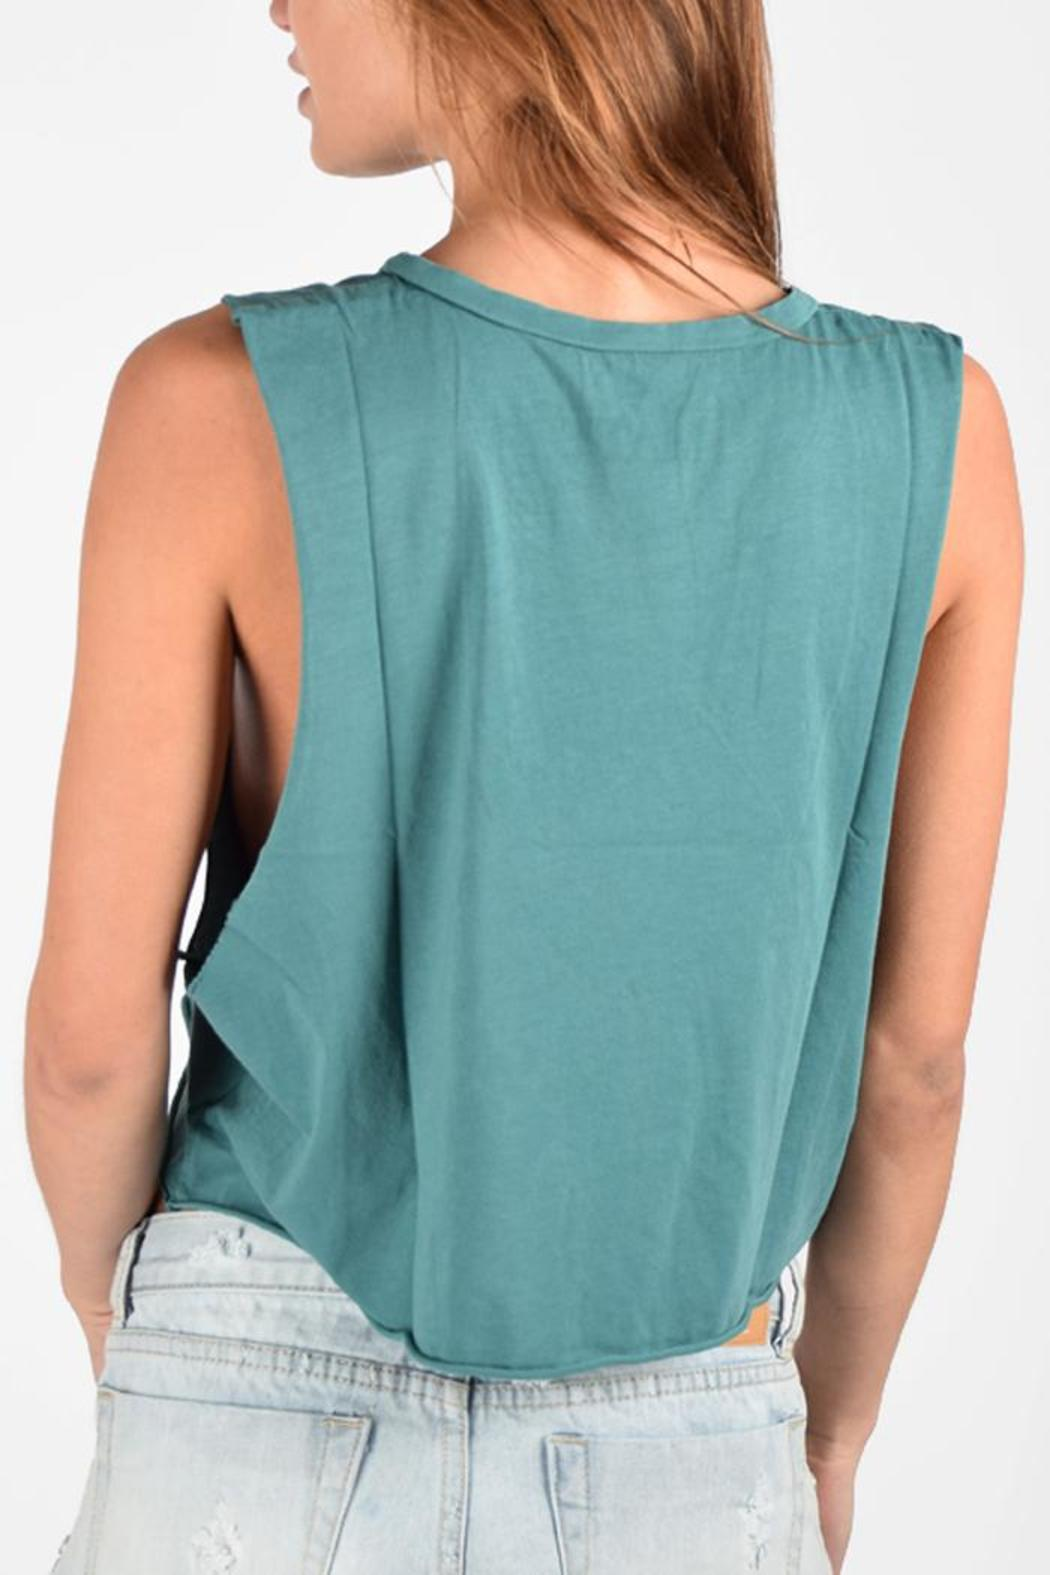 mate the label graphic crop tank from california by punch